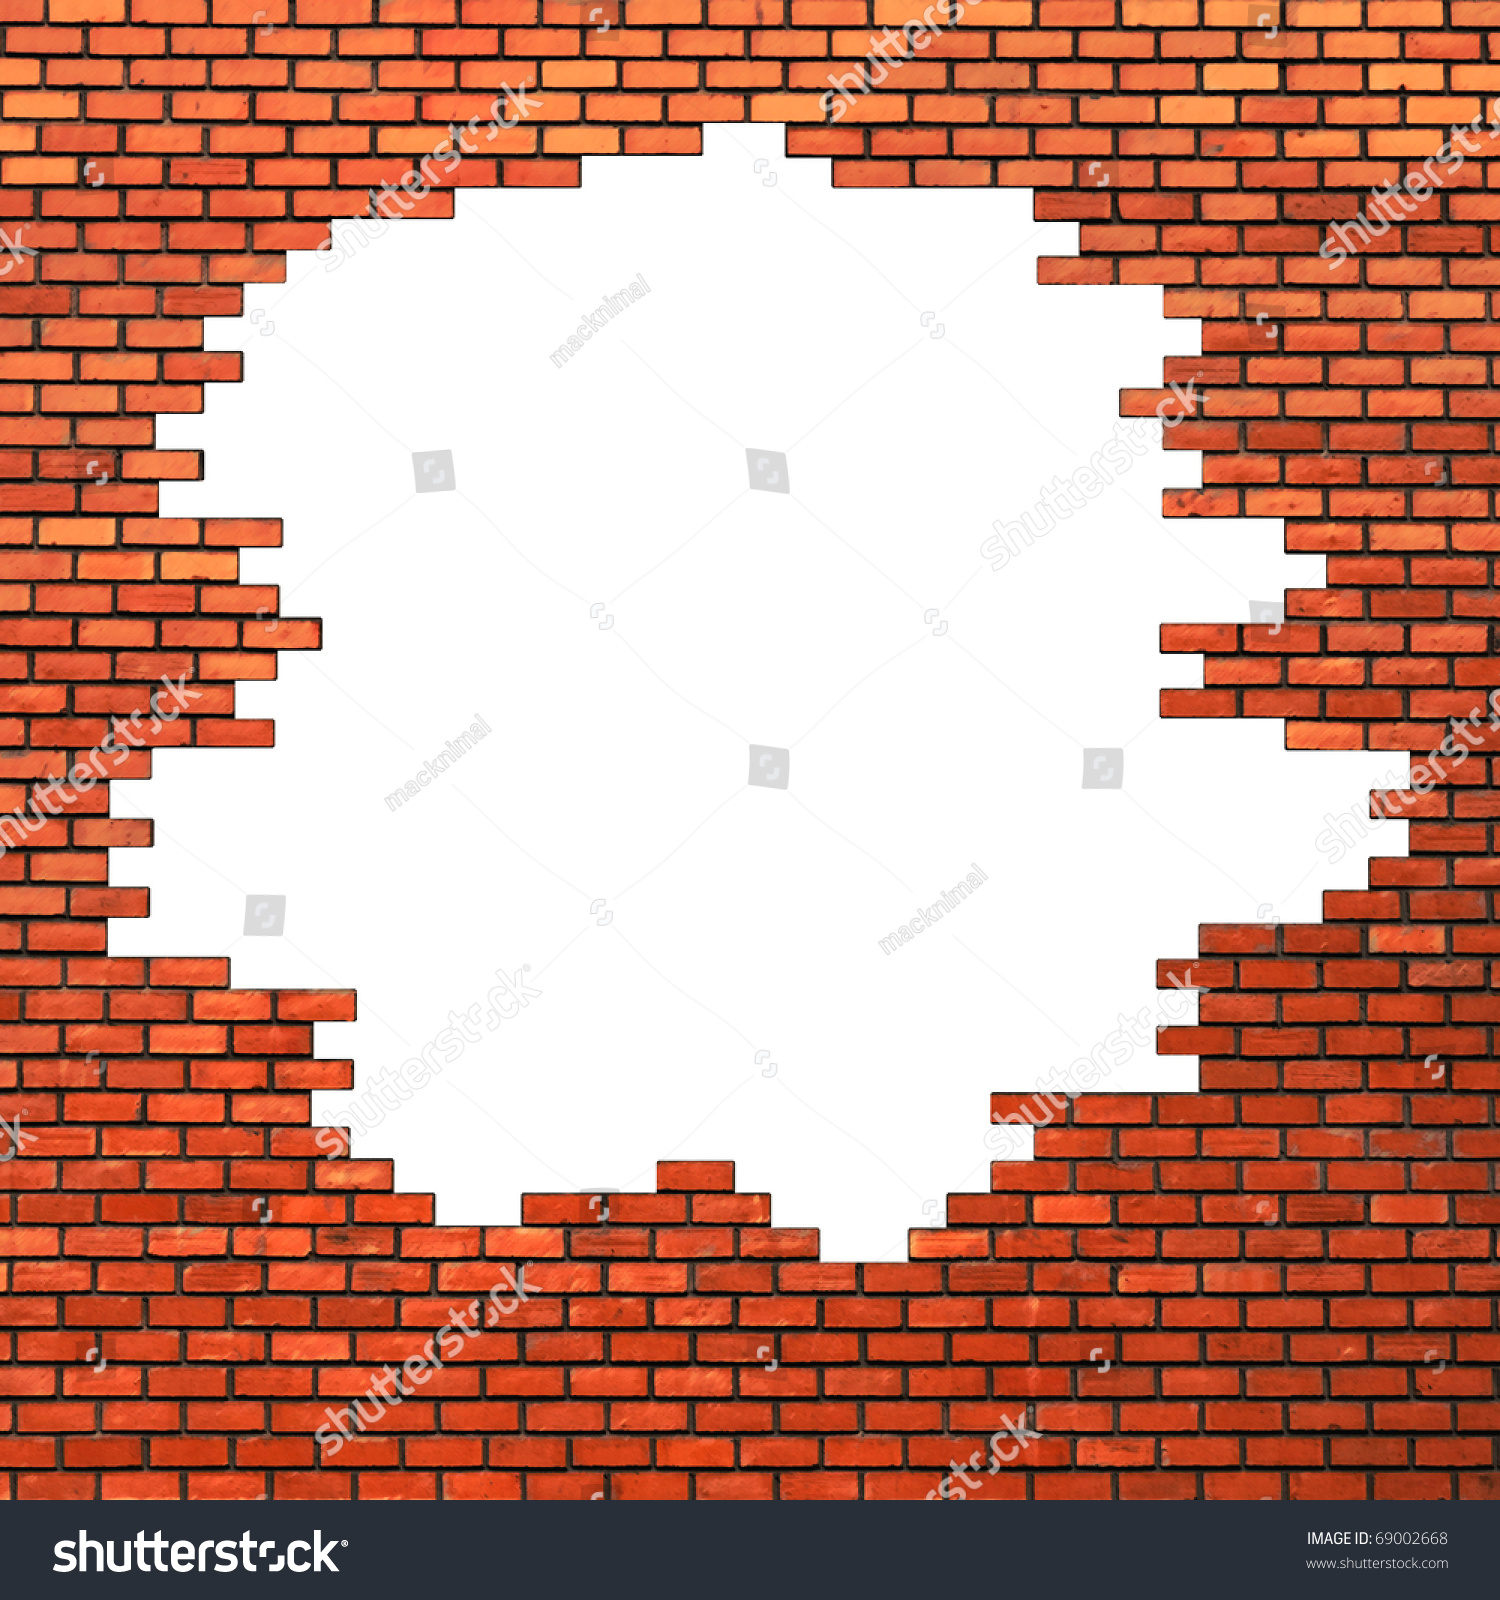 Hole In Brick Wall Stock Photo 69002668 : Shutterstock